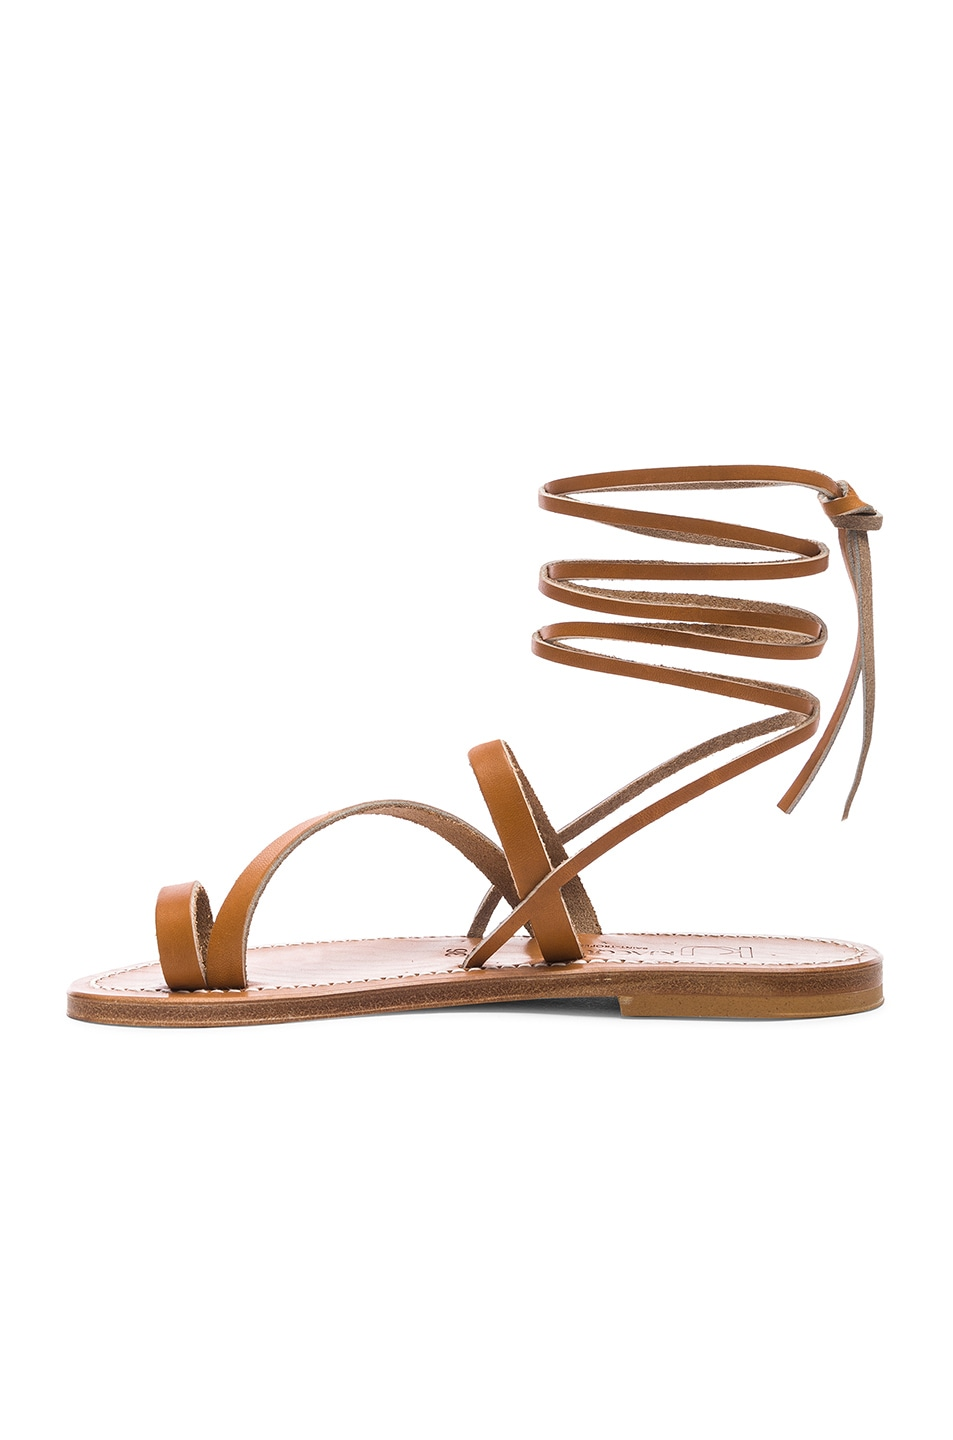 Image 5 of K Jacques Ellada Ankle Wrap Sandal in Pul Natural